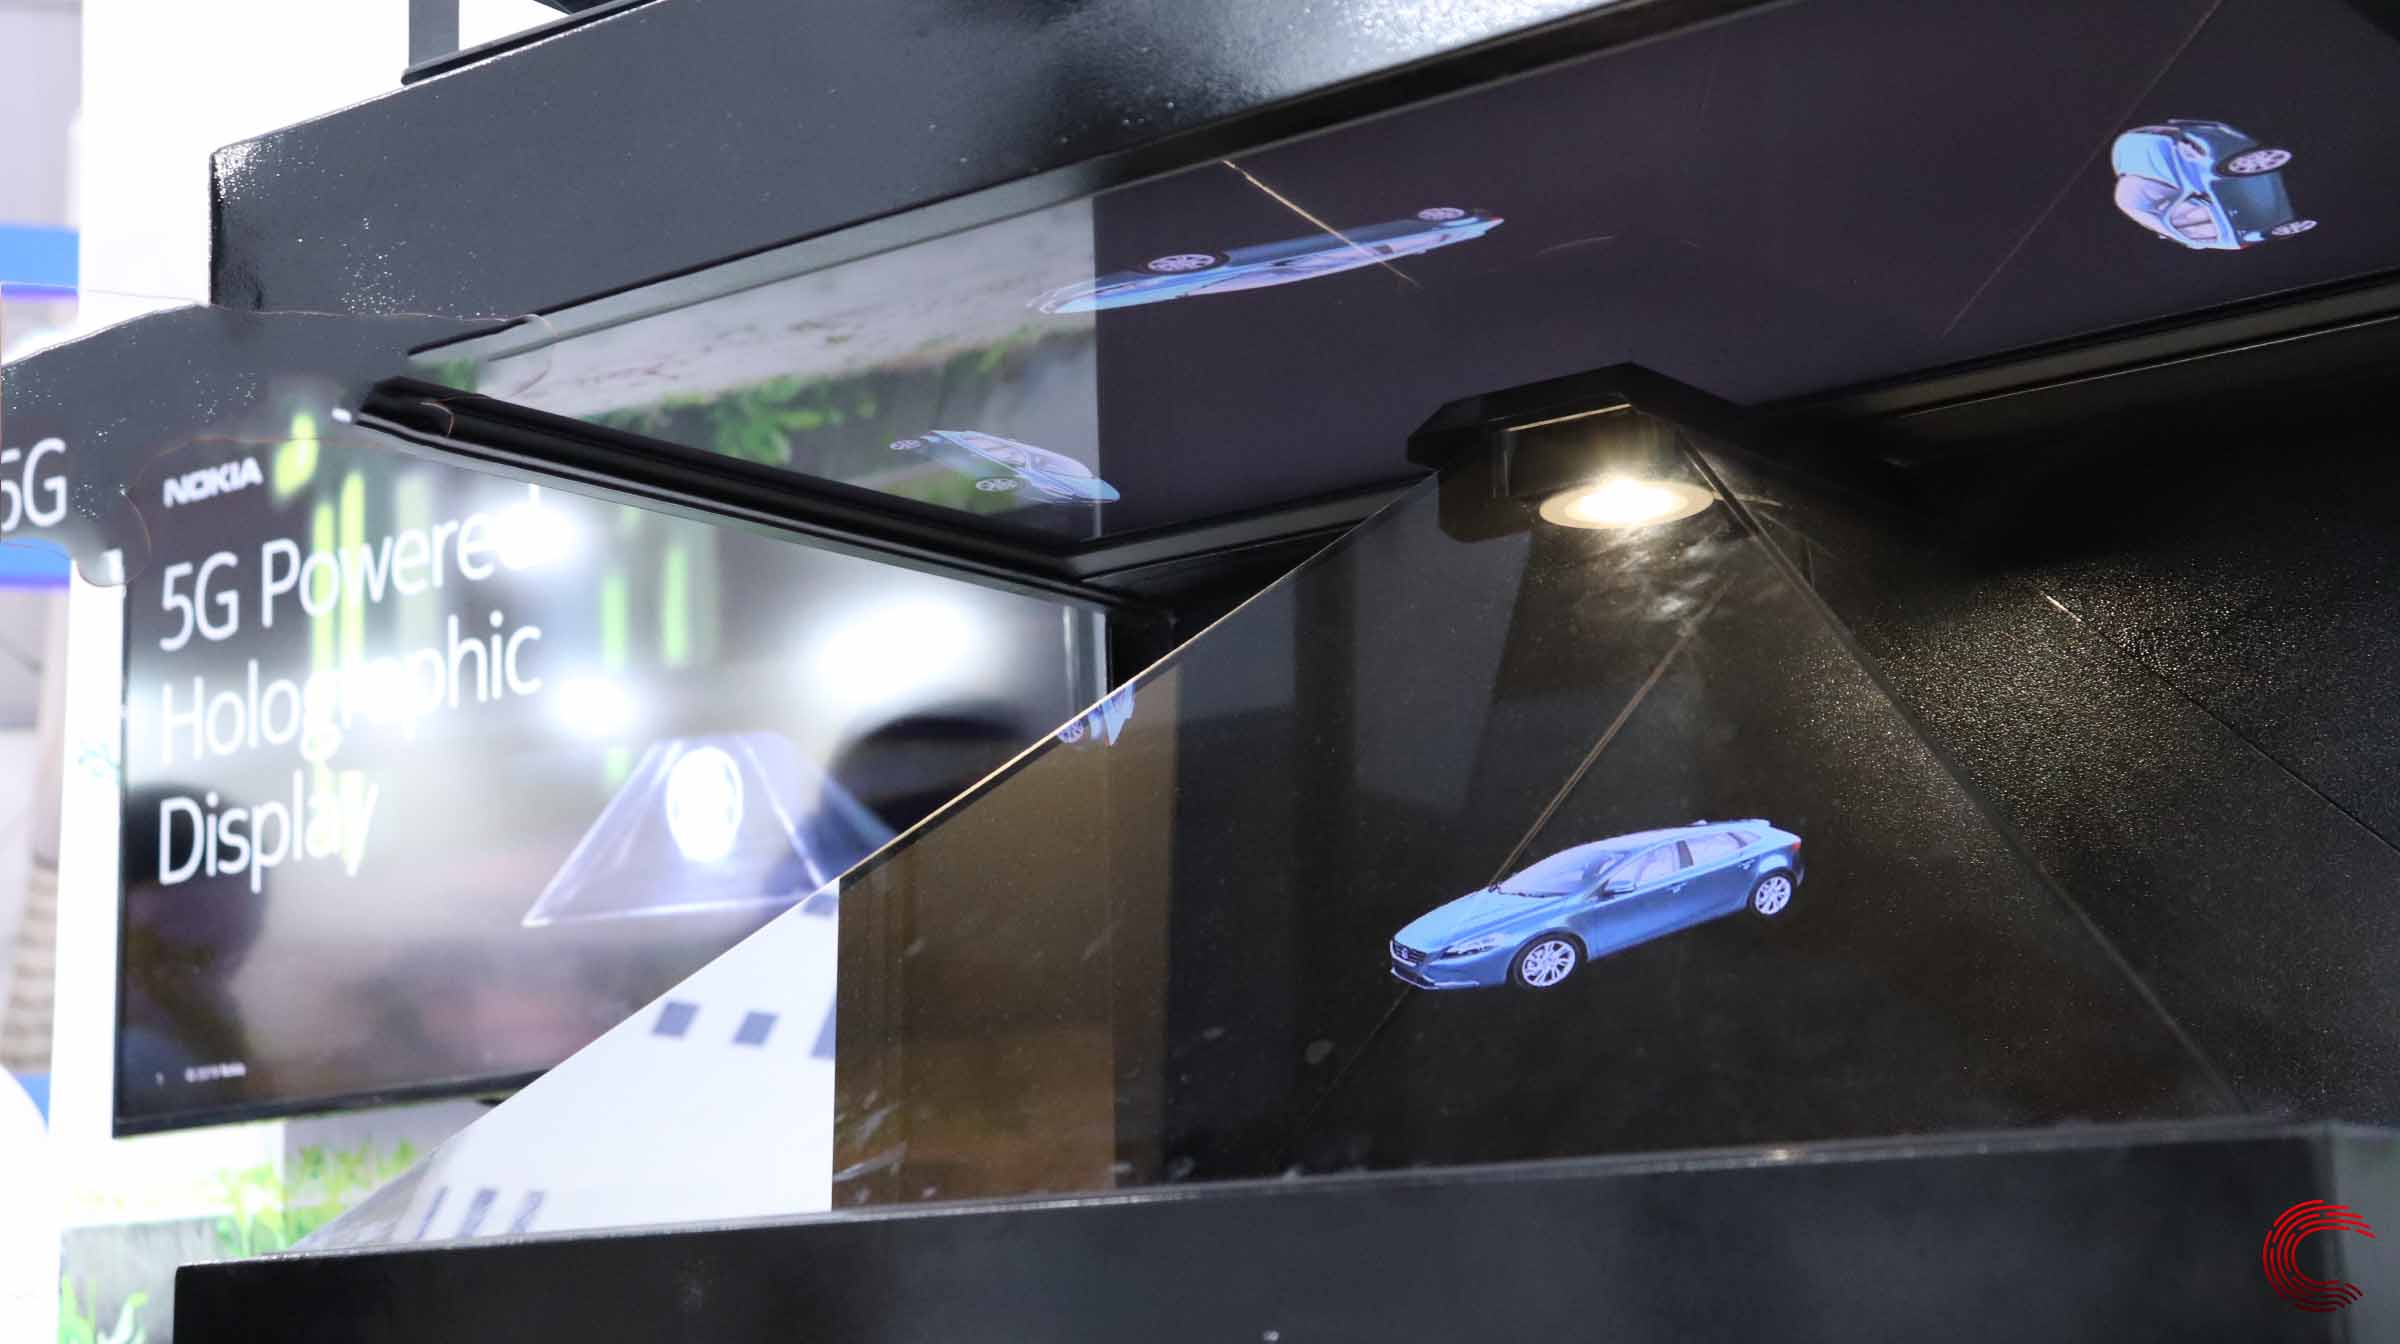 Nokia unveils 5G Holographic technology at the IMC 2019